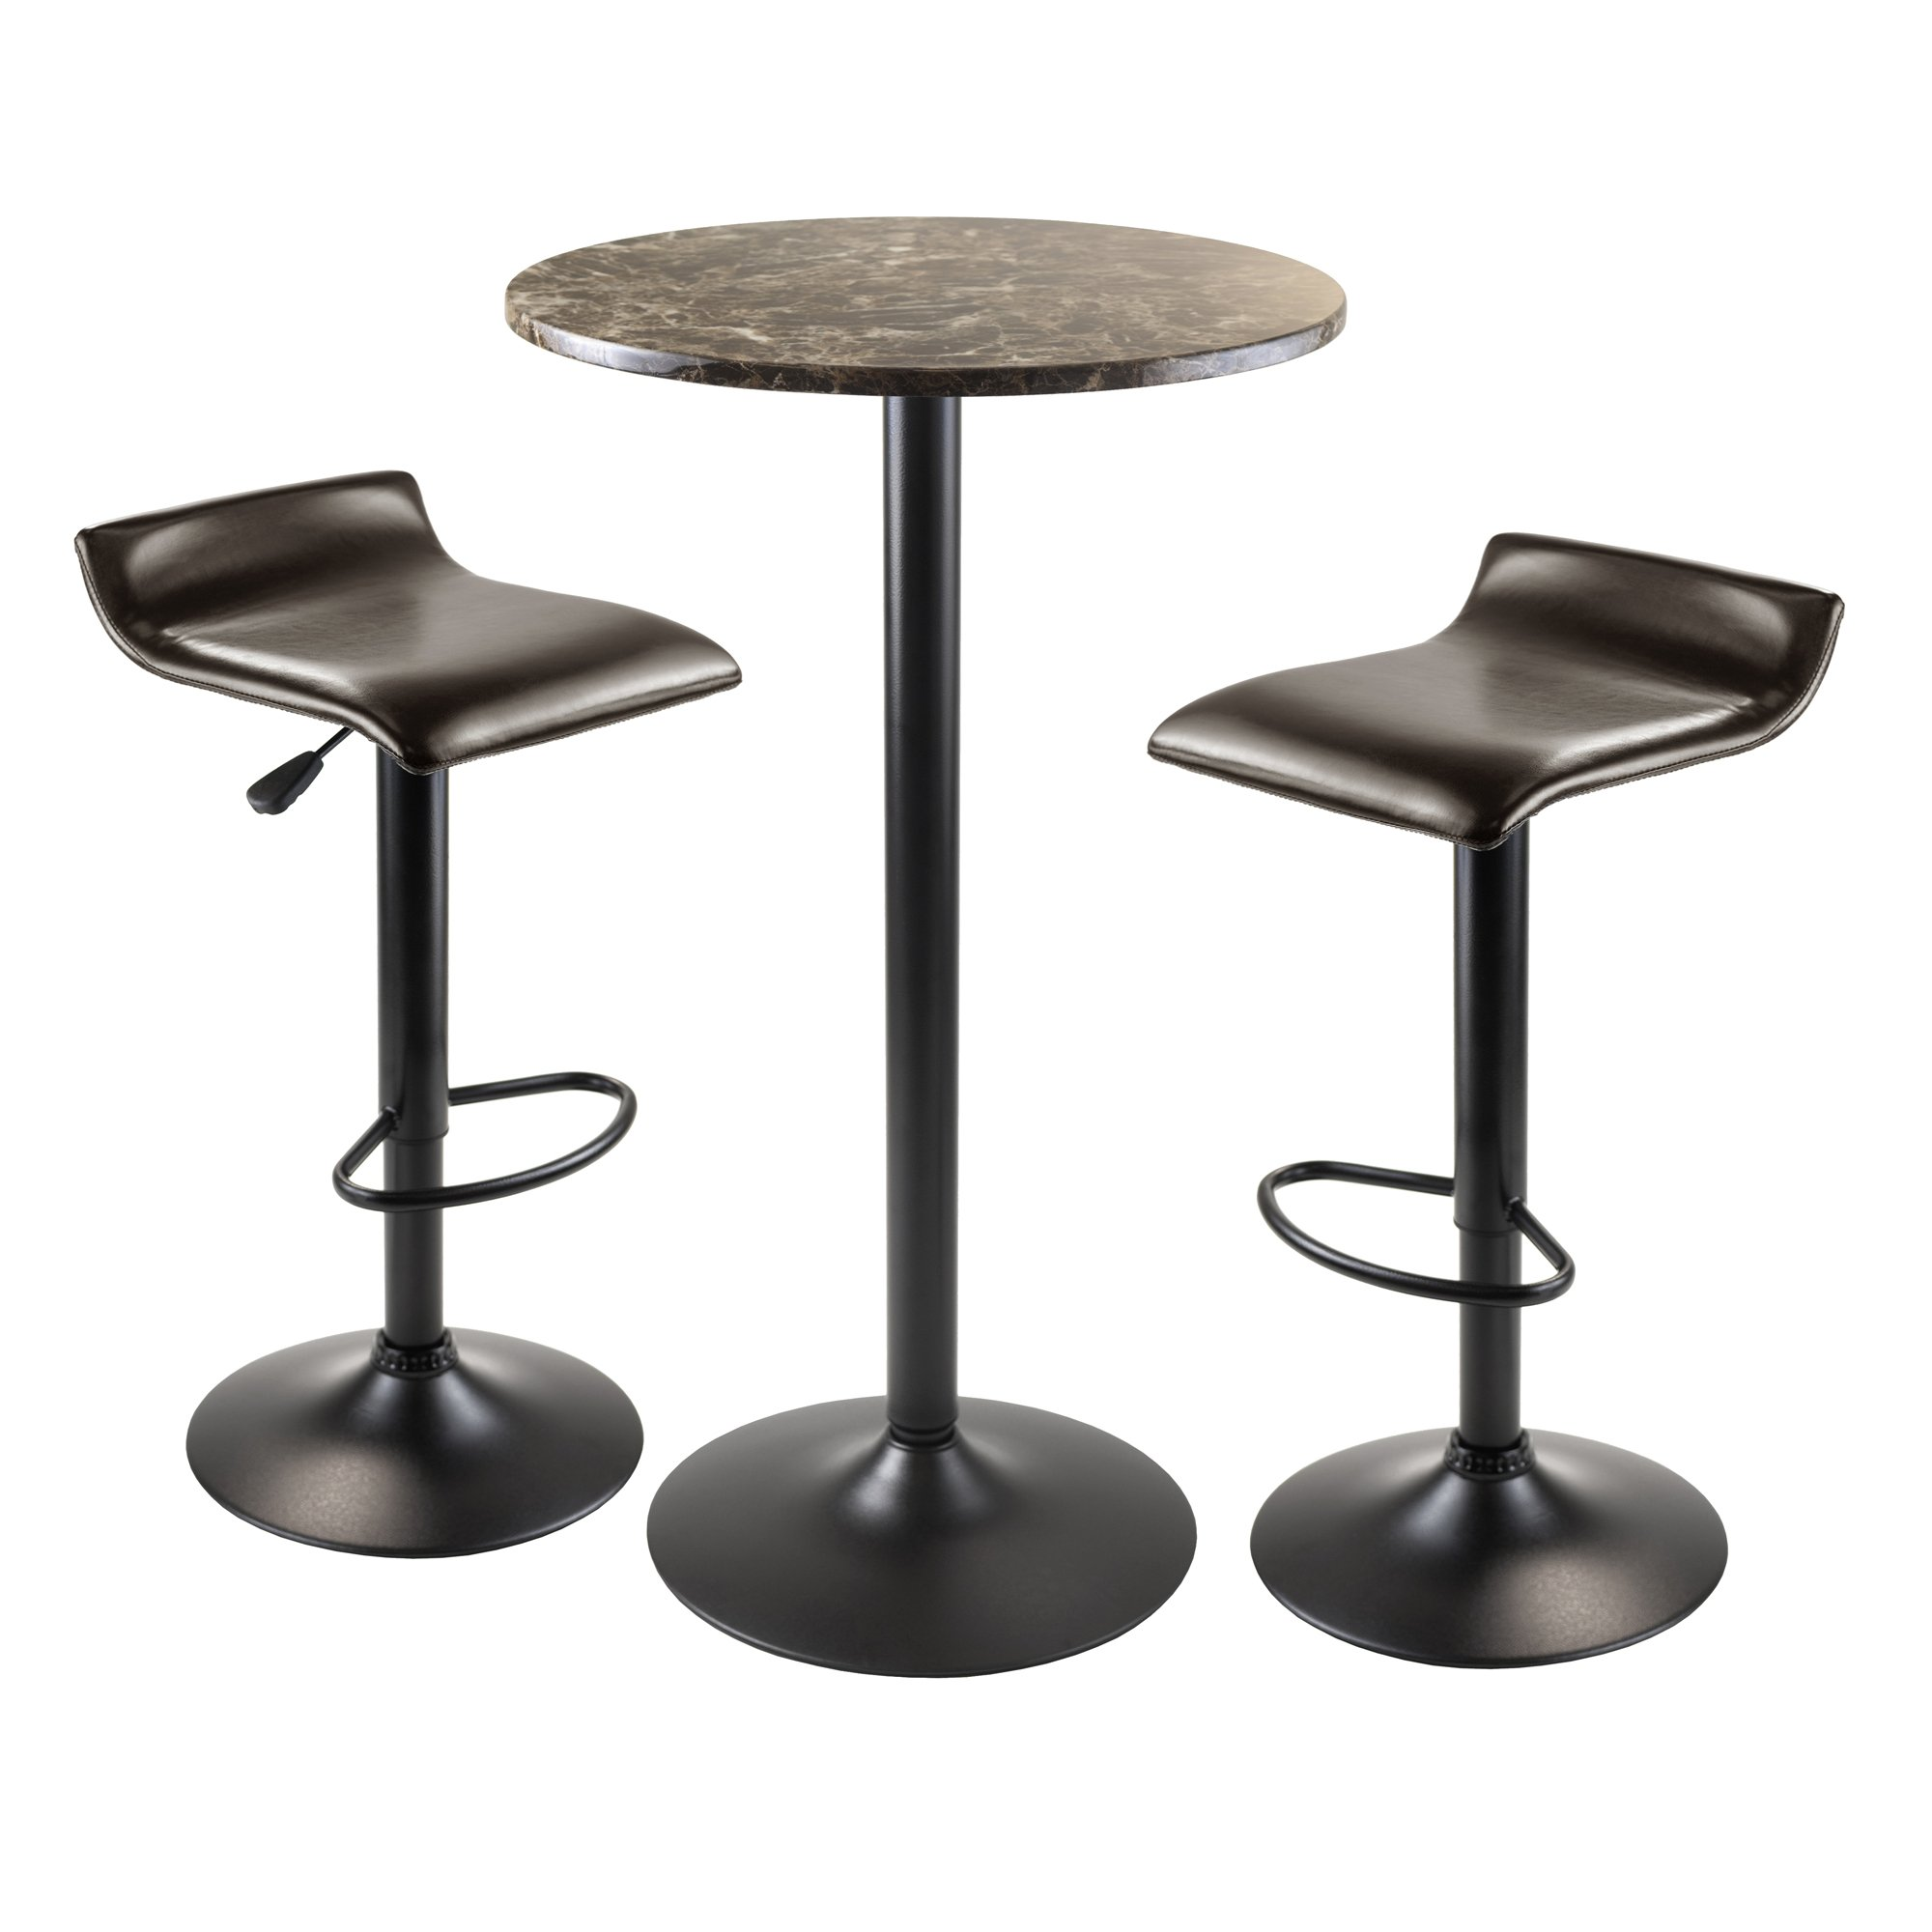 Winsome Wood Cora 3-Piece Round Pub Table with 2 Swivel Stool Set by Winsome